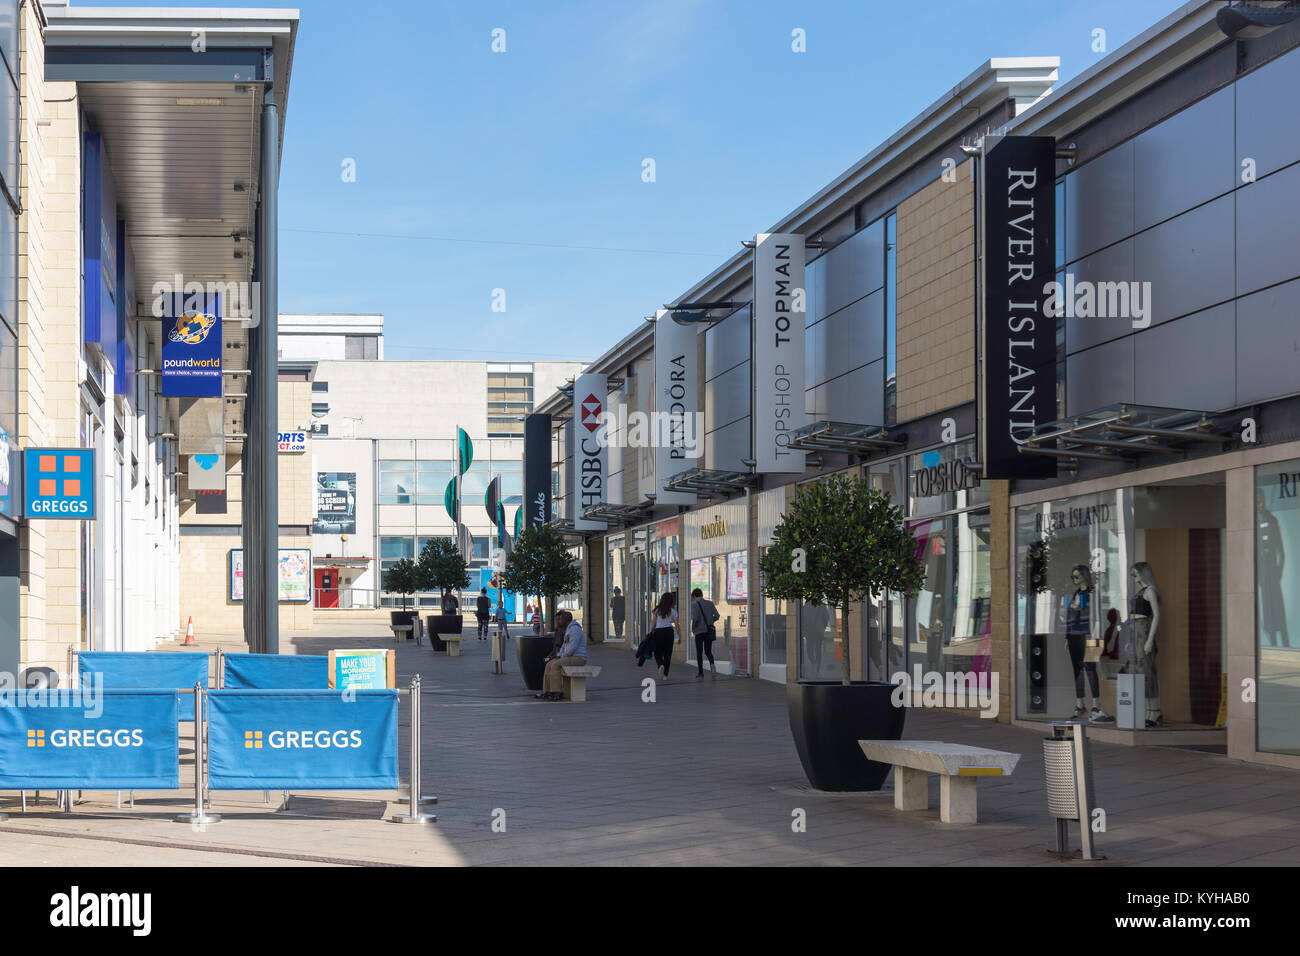 Retail shops in The Water Gardens, College Square, Harlow, Essex, England, United Kingdom - Stock Image